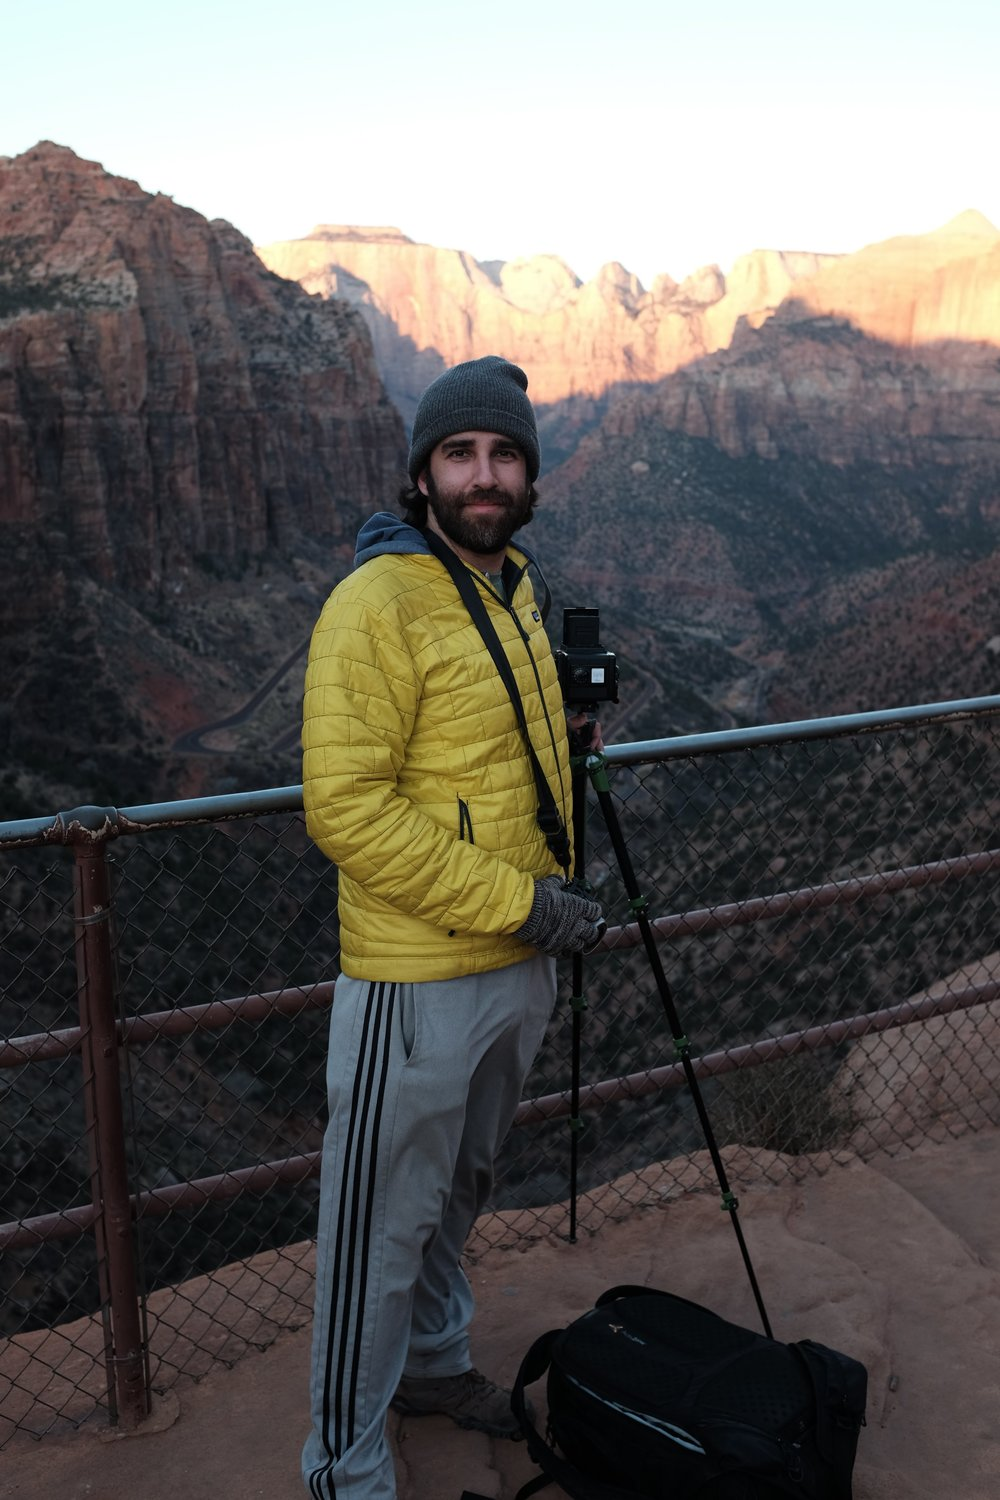 me and my camera in Zion, Utah